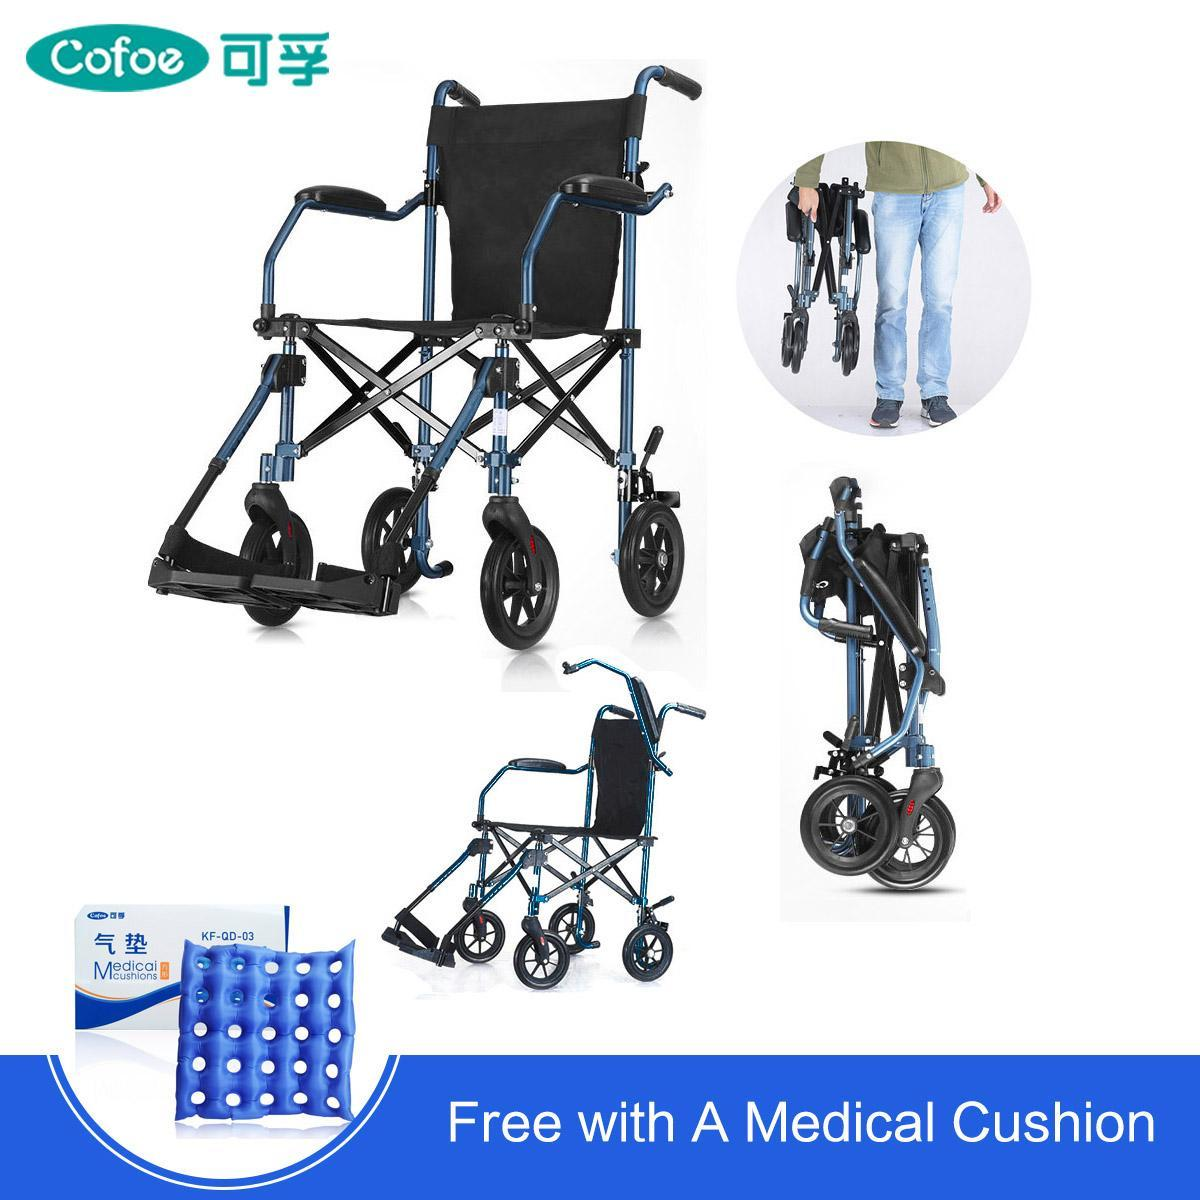 Cofoe Foldable Elderly WheelChair Aluminum Compact Lightweight Wheel Chair  with Foot board Removable Trolley Cart Travel Walker Rollator FREE